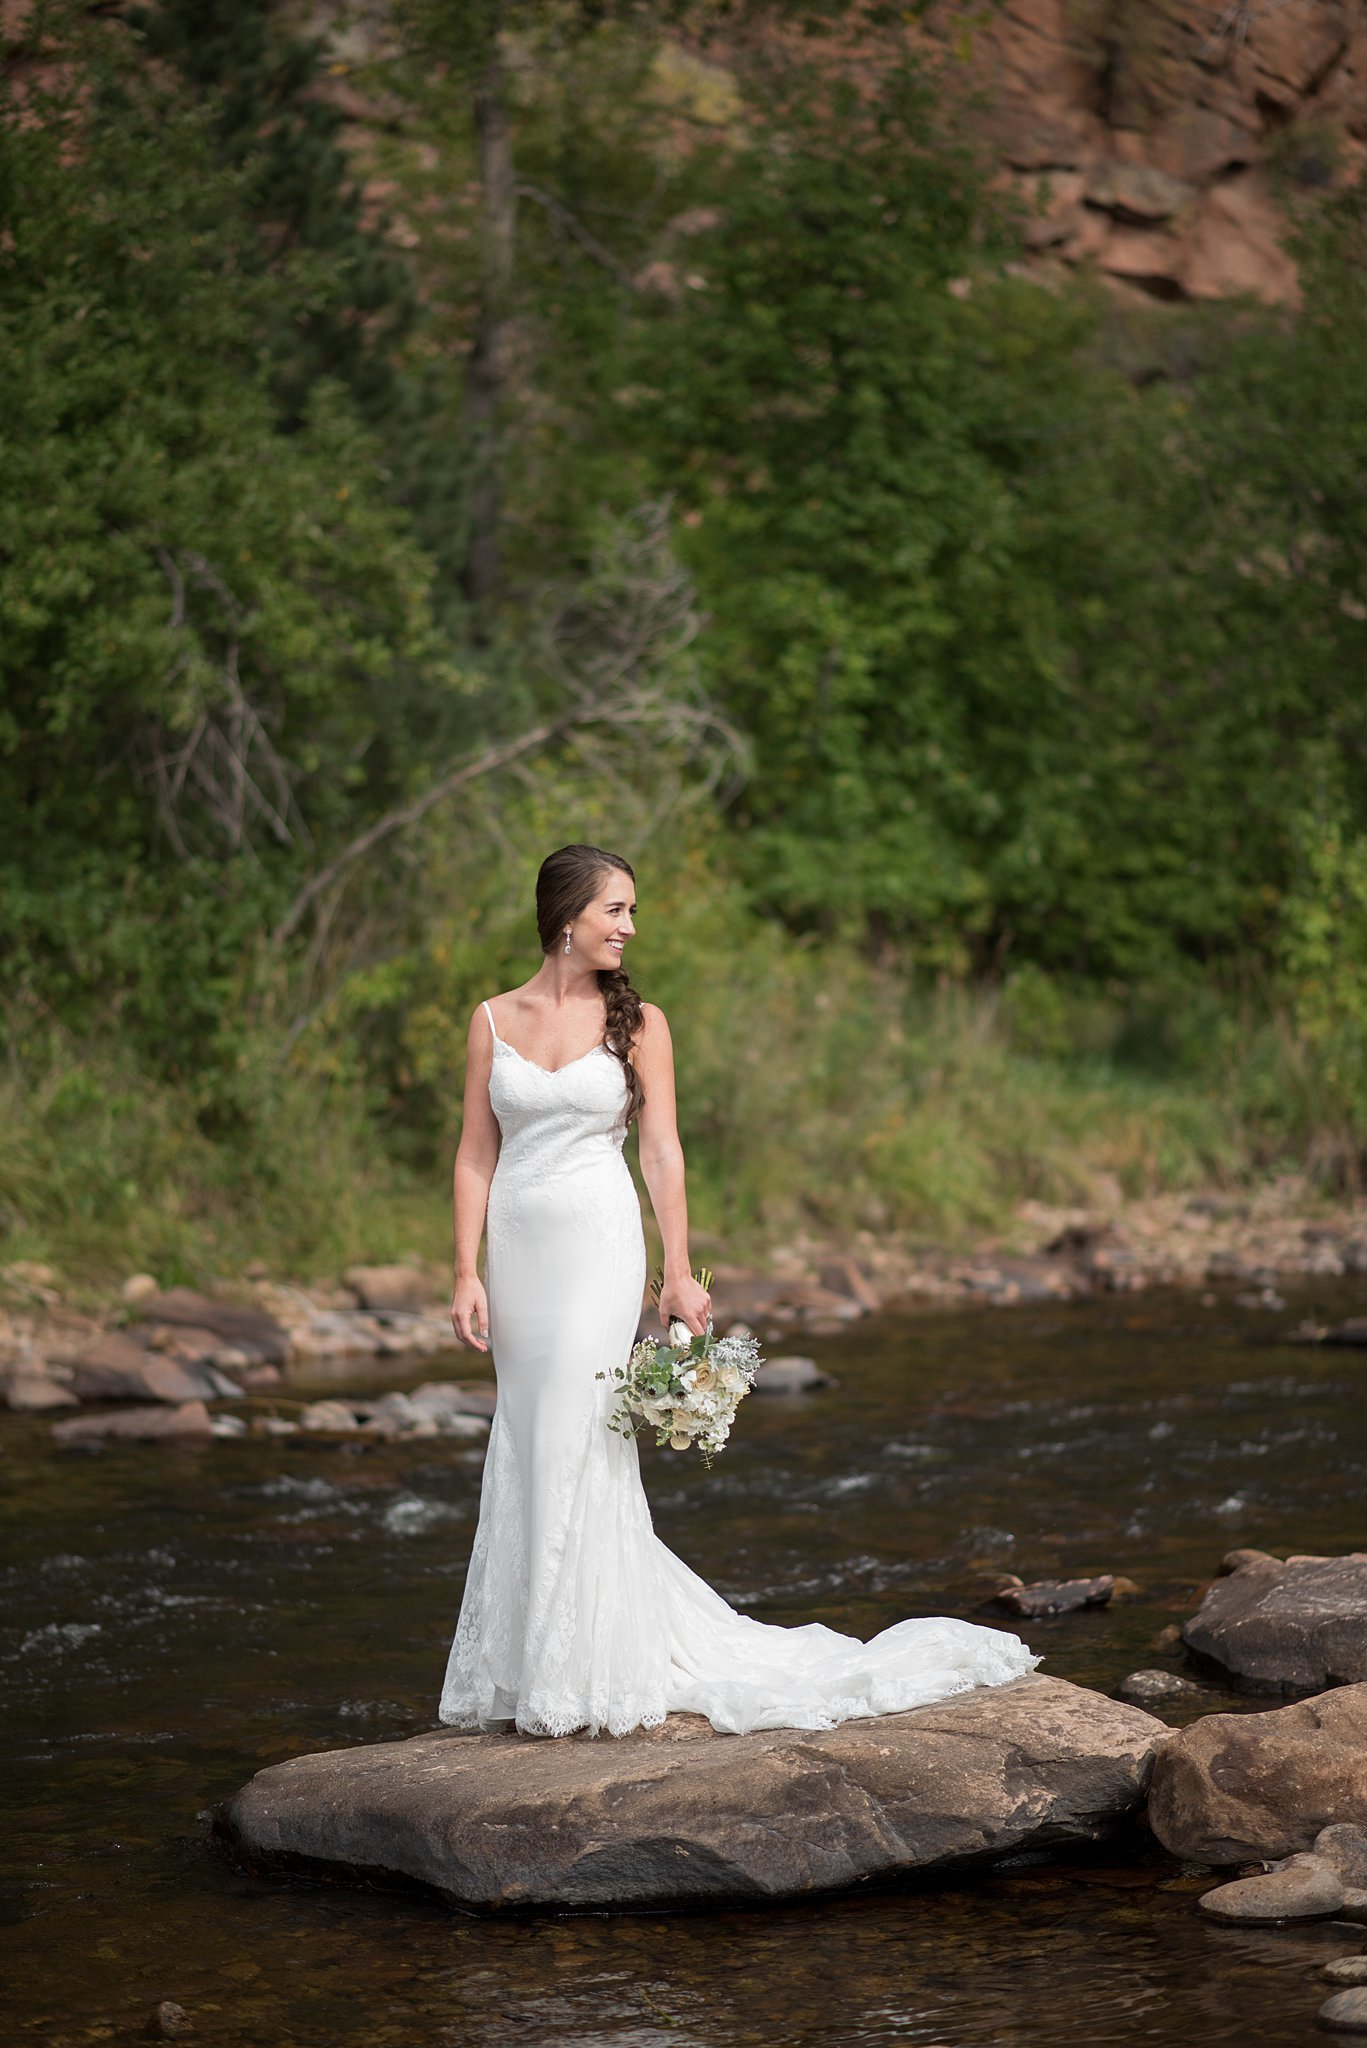 Elizabeth Ann Photography, Denver Wedding Photographer, Fine Art Wedding_2533